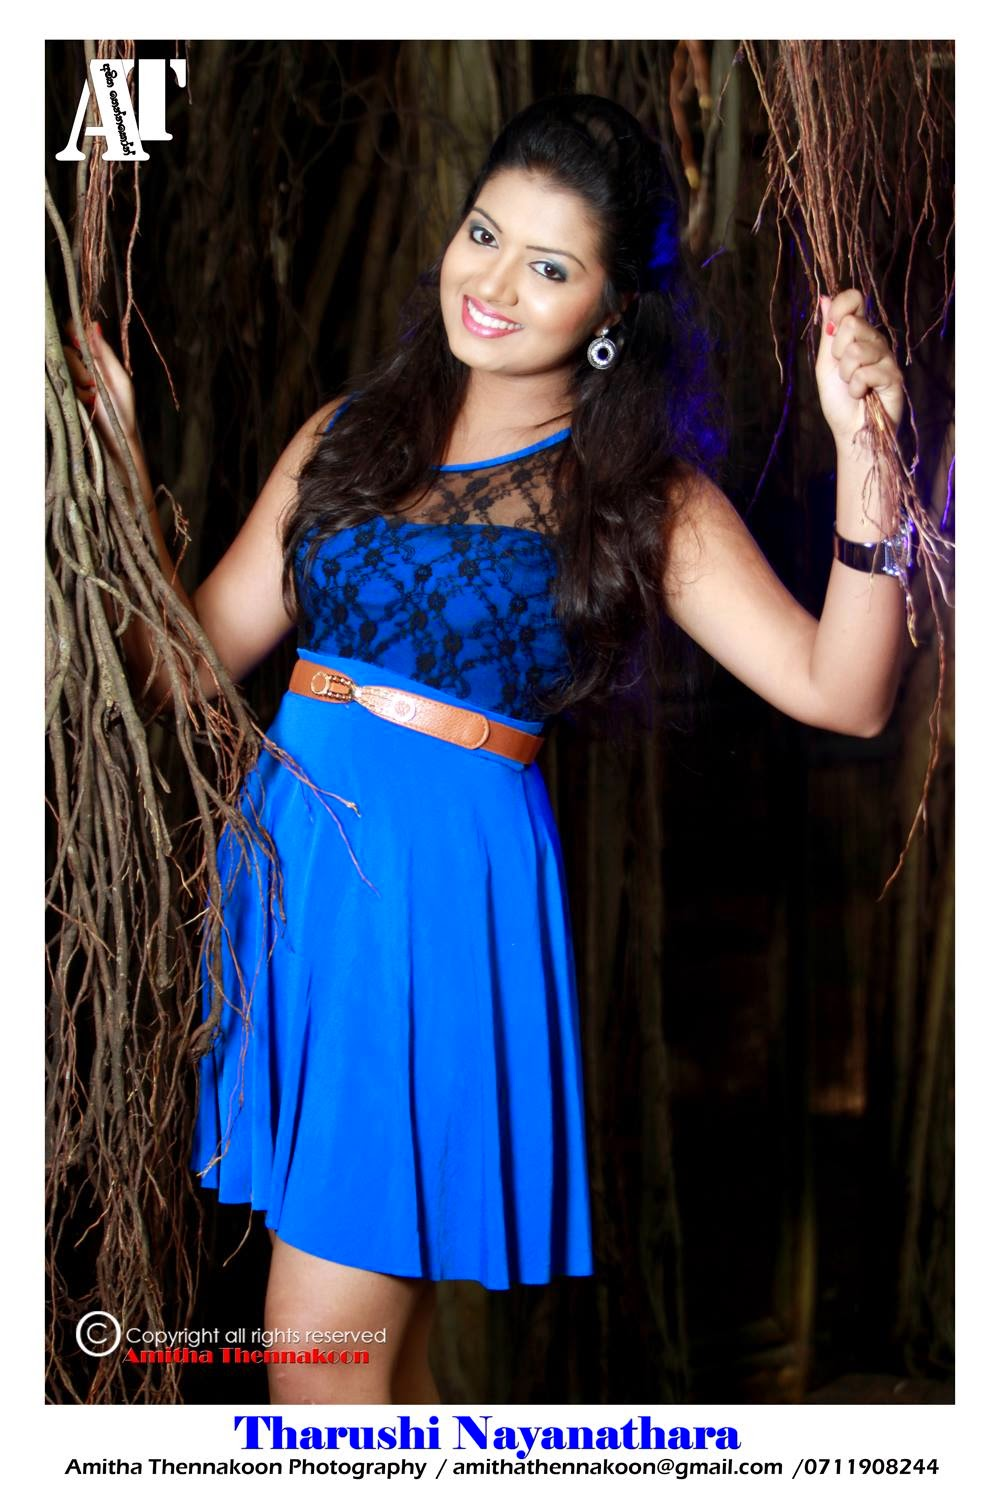 Tharushi Nayanathara blue mini dress